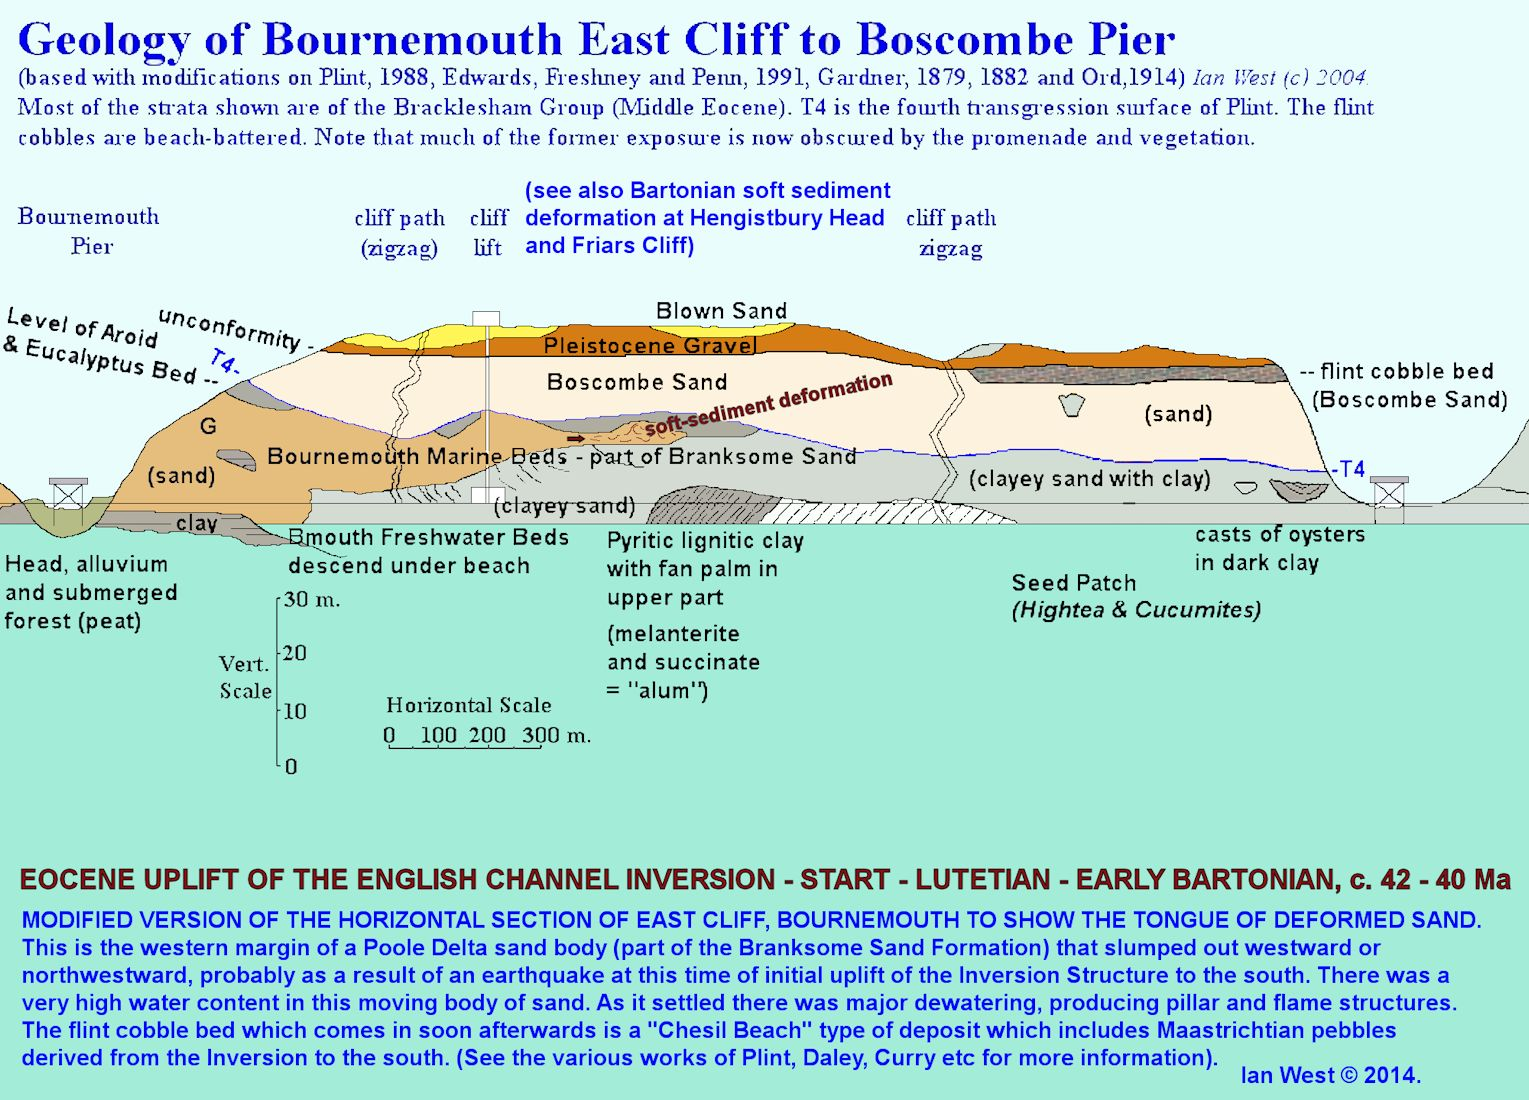 Eocene uplift of the Inversion Structure - soft sediment deformation (palaeoseismicity?) and a pebble beach development, with Maastrichtian pebbles from the south; evidence from Bournemouth, Dorset, in a cliff section